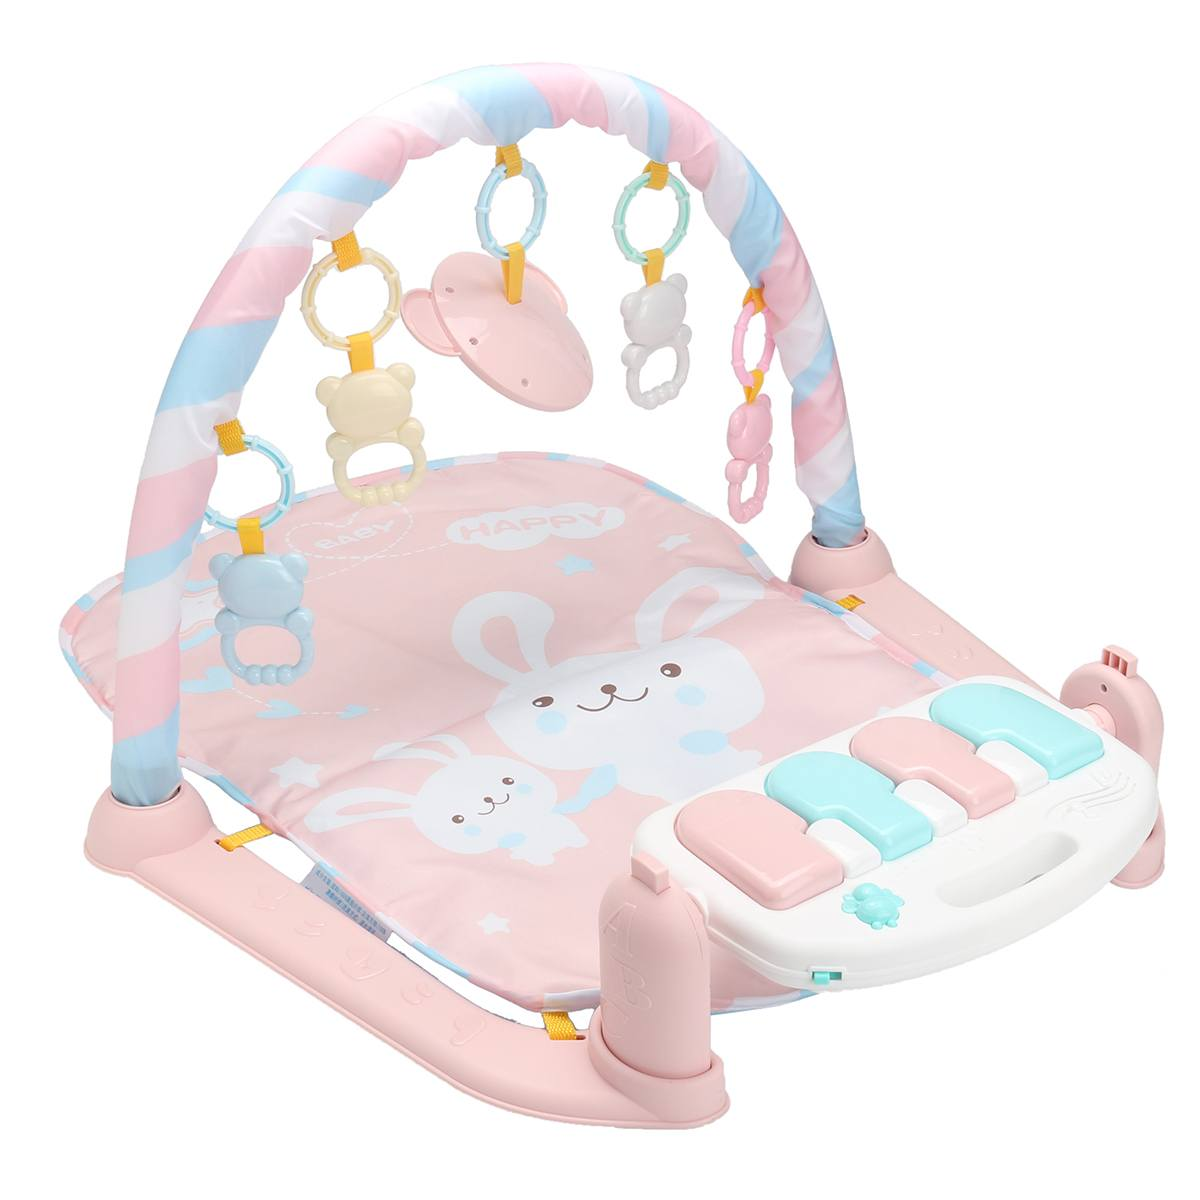 Pink Baby Play Mat Kids Rug Educational Puzzle Carpet With Piano Keyboard Cute Animal Playmat Baby Gym Crawling Activity Mat Toy